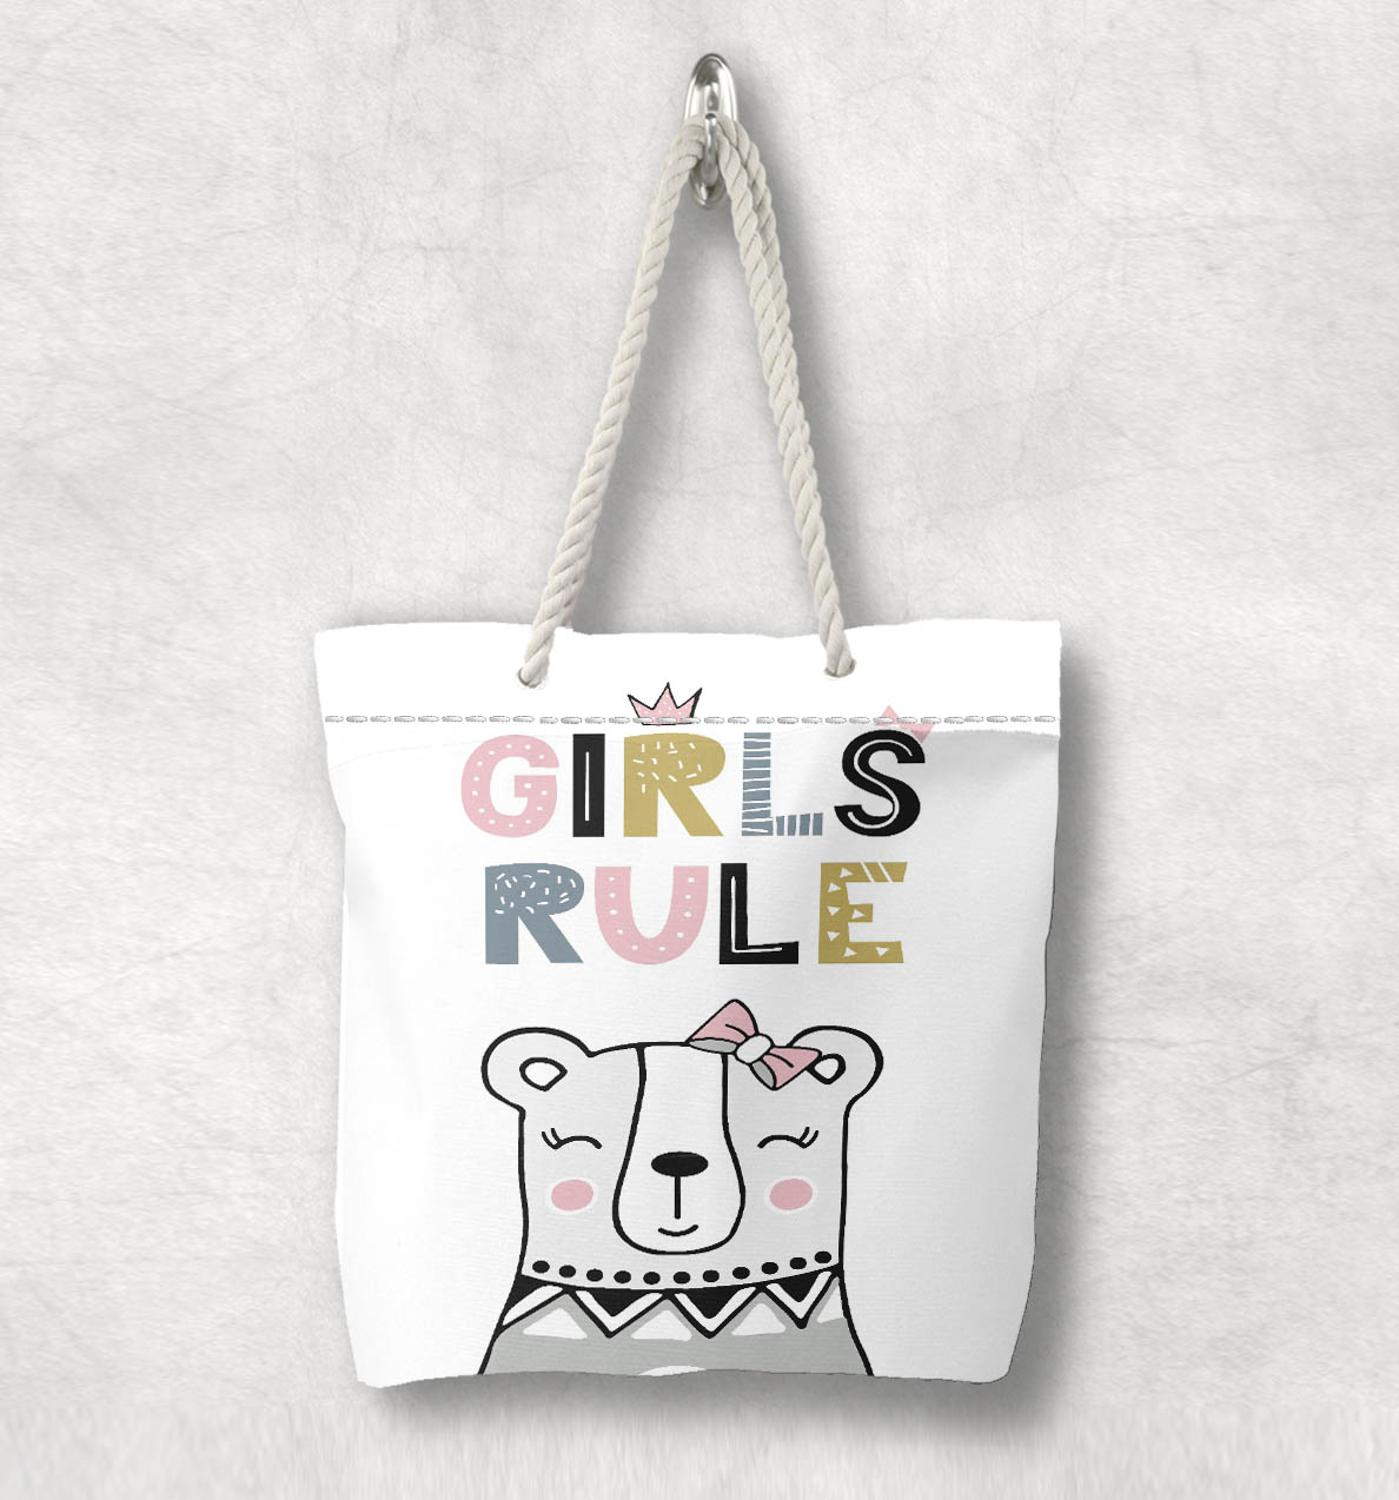 Else Girls Rule Princess Bear Nordic  Scandinavian White Rope Handle Canvas Bag  Cartoon Print Zippered Tote Bag Shoulder Bag